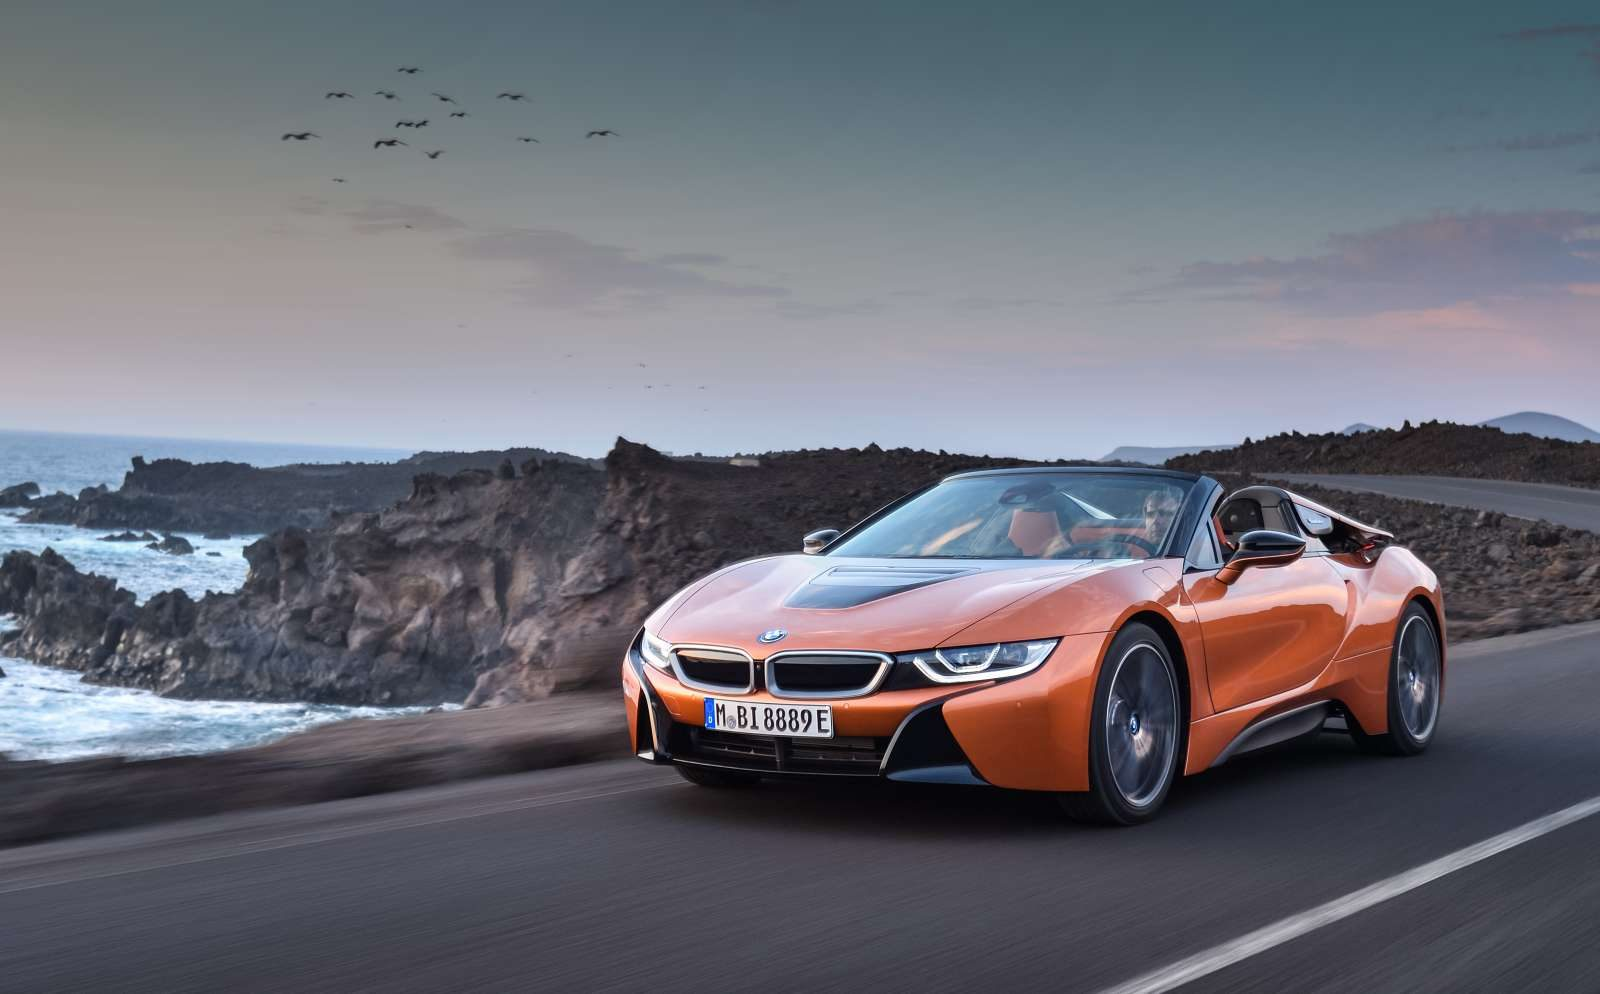 Bmw I8 Roadster Voor Levensgenieters